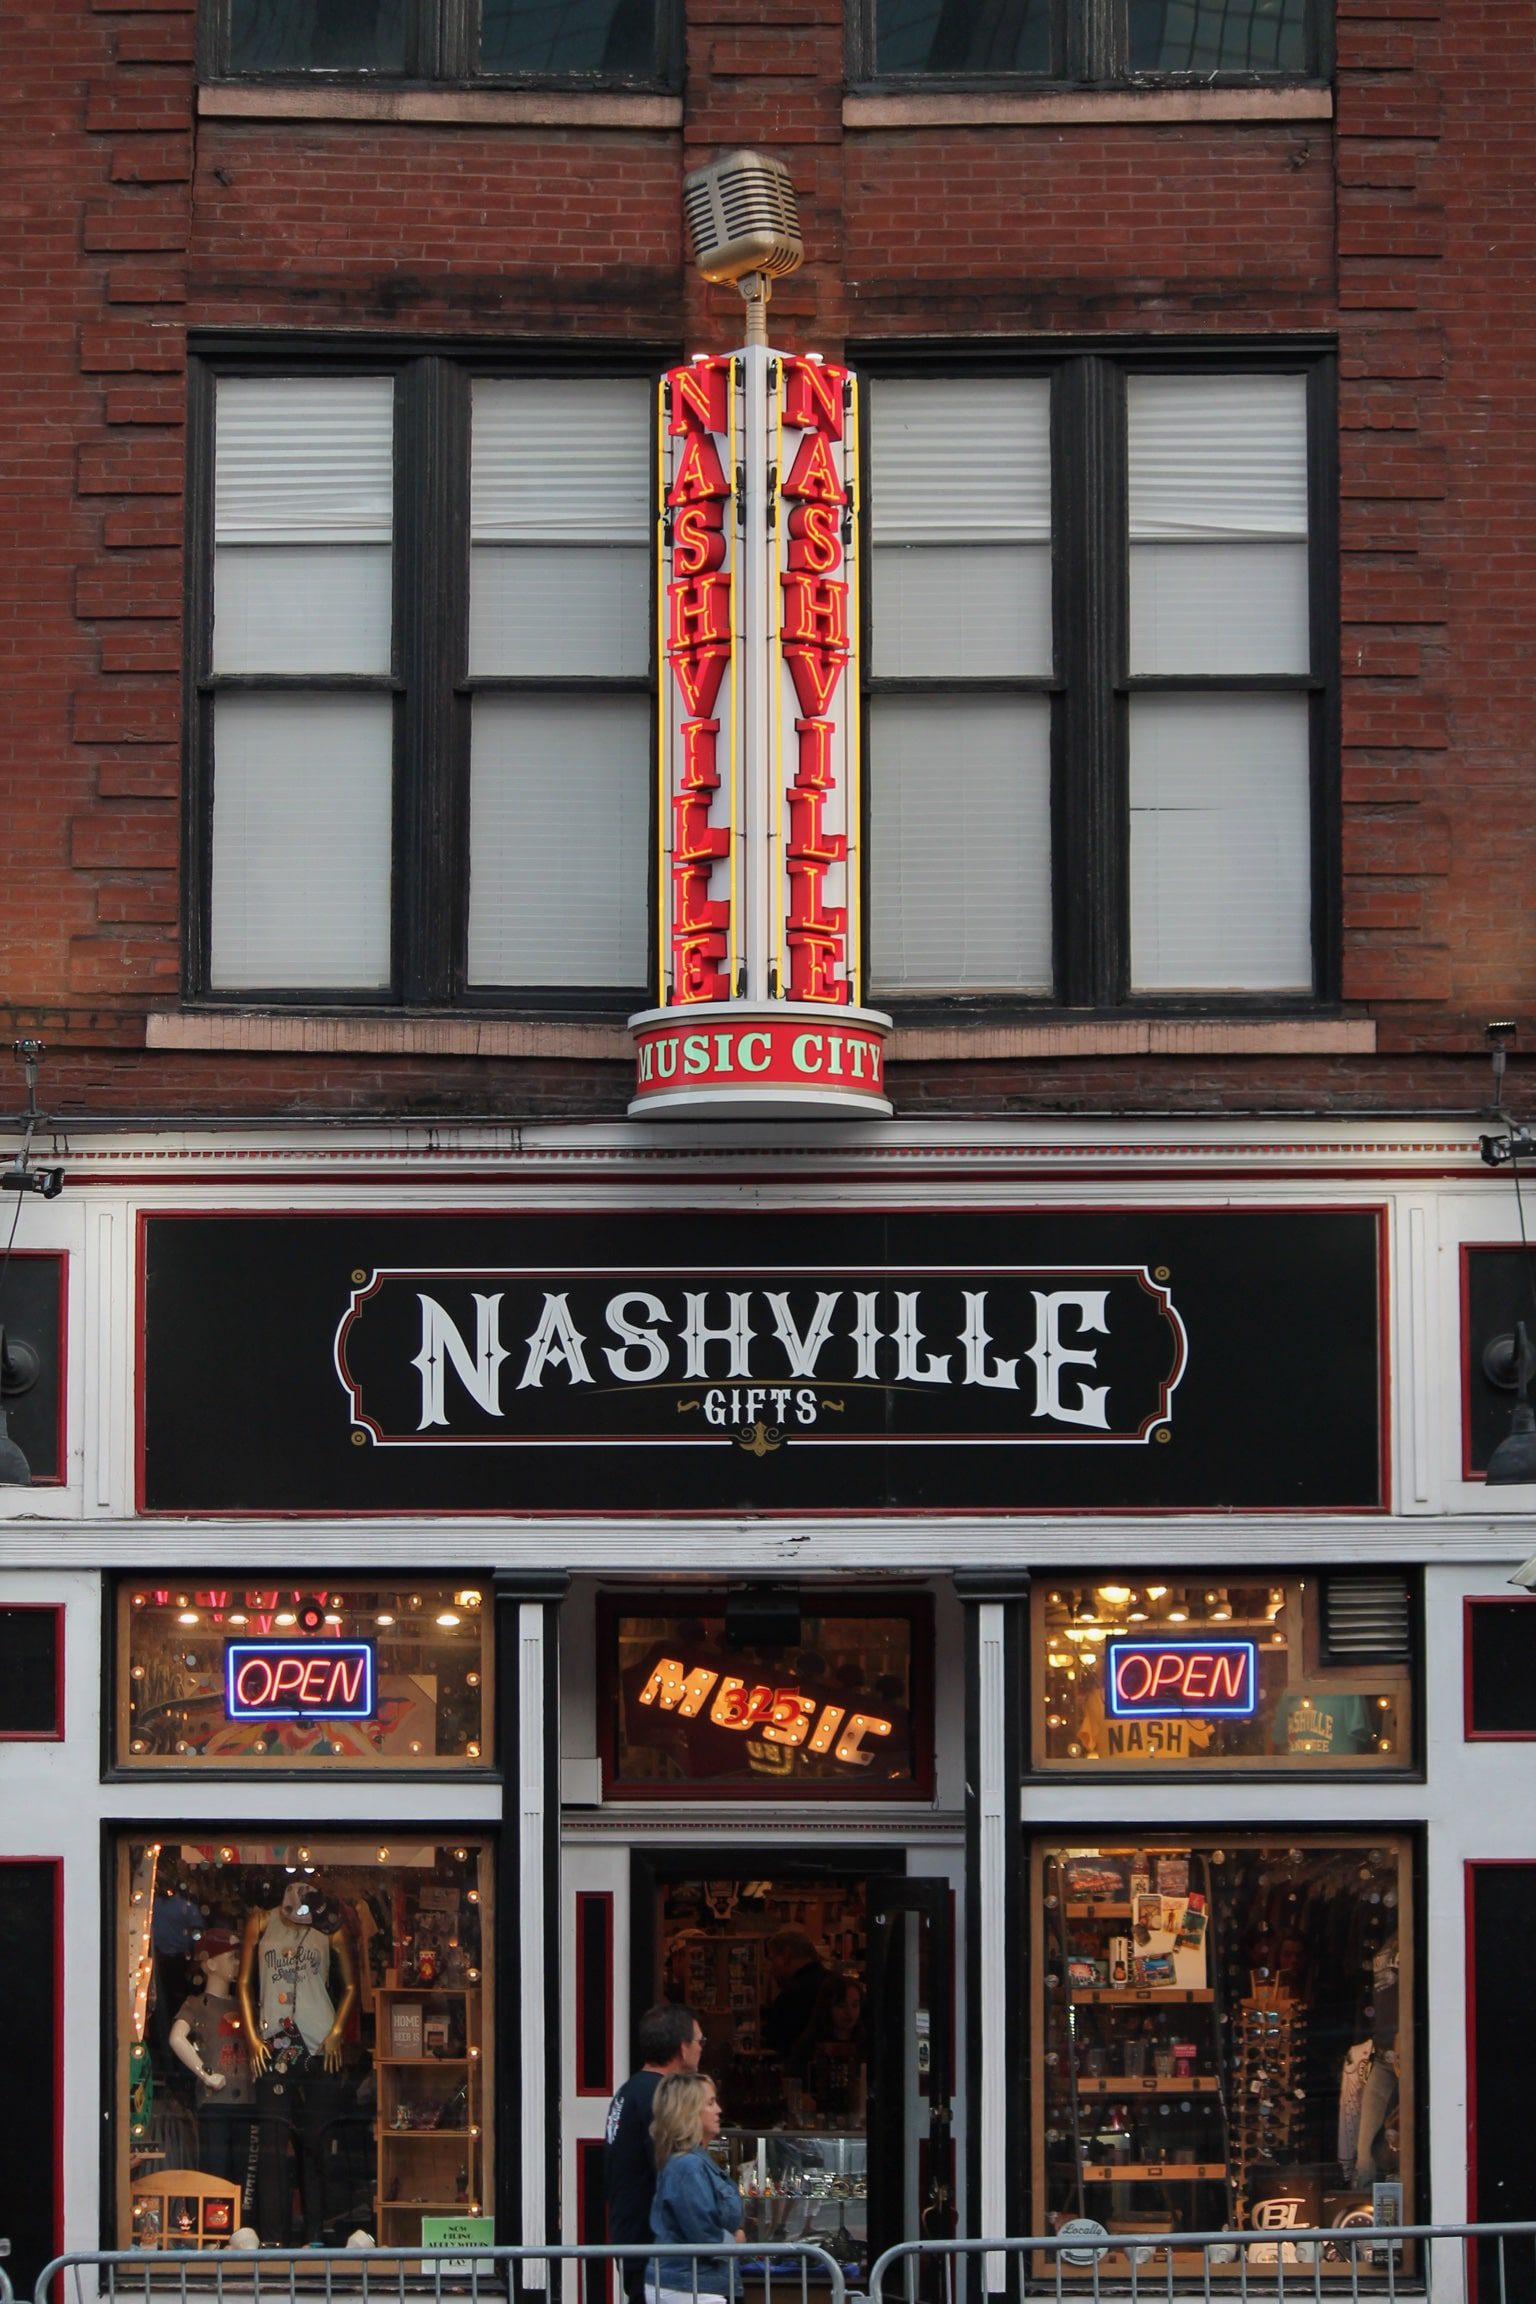 entertainment sign in Nashville with led conversion